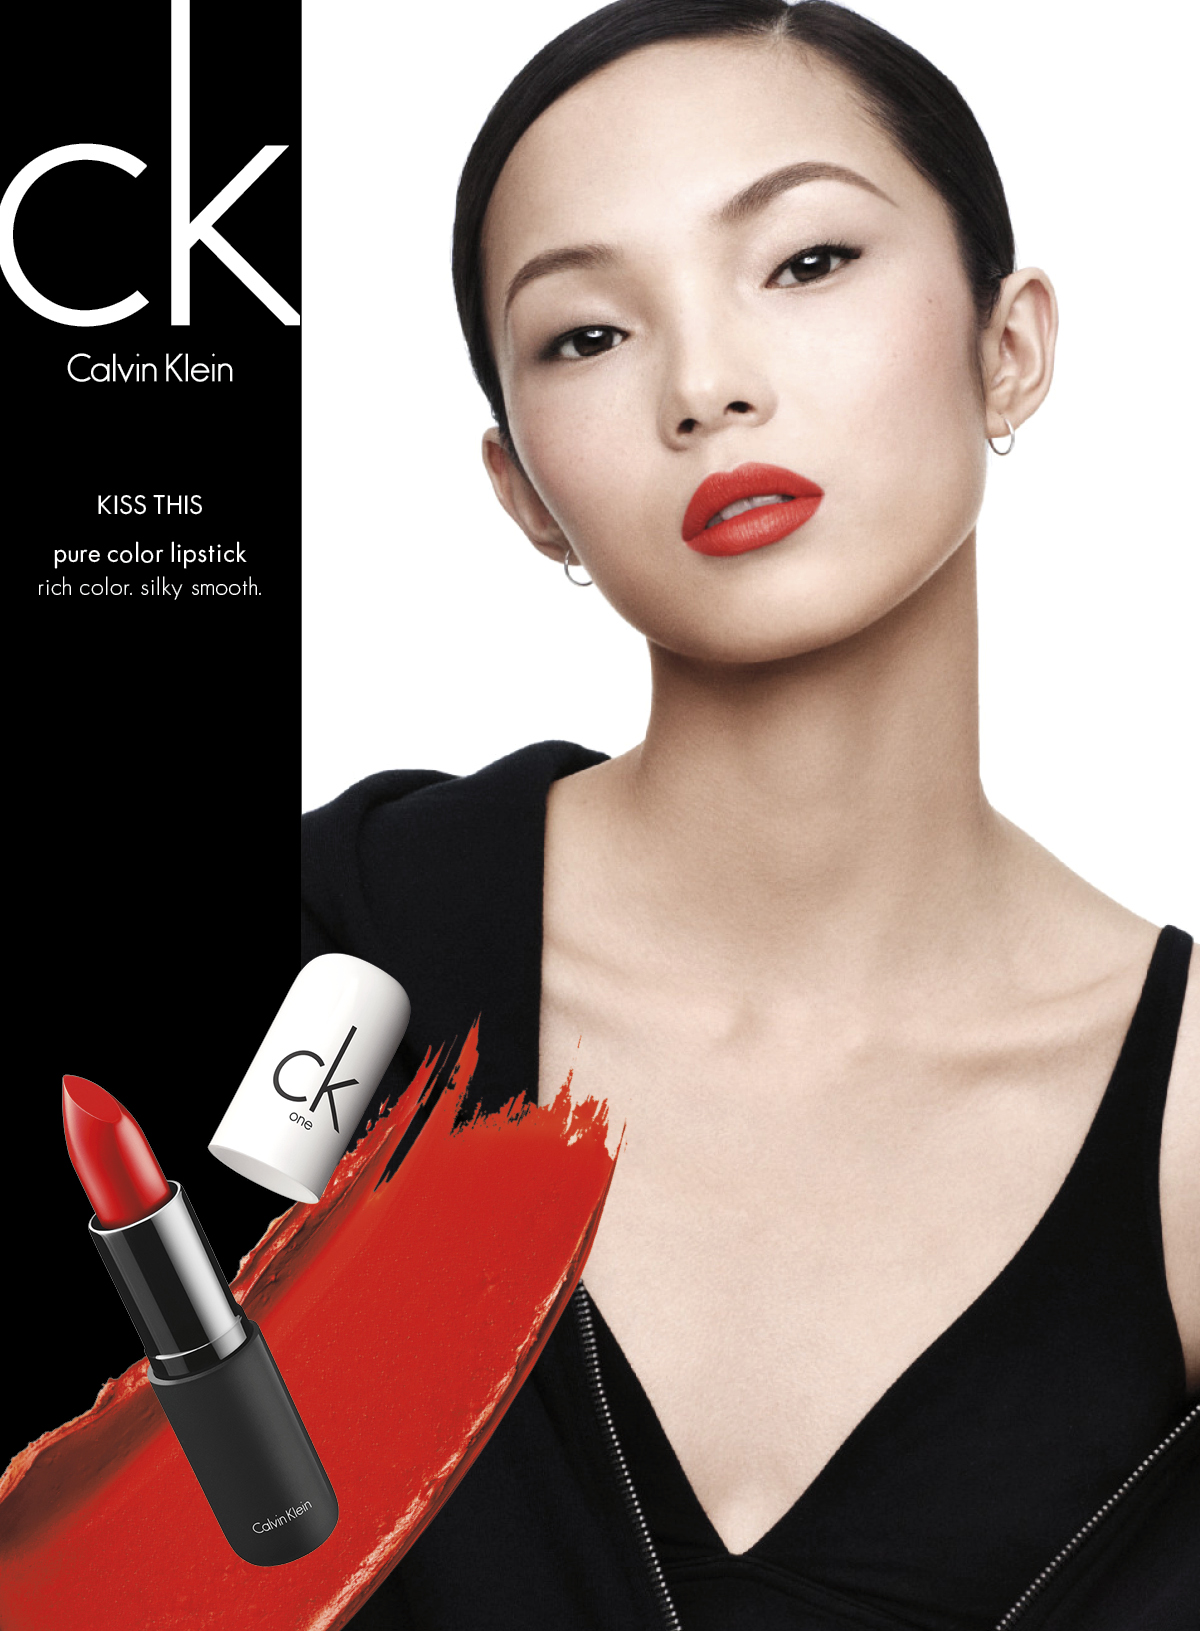 CK COLOR SINGLE PAGE 8%22X10.875%22_PC XIAO.jpg